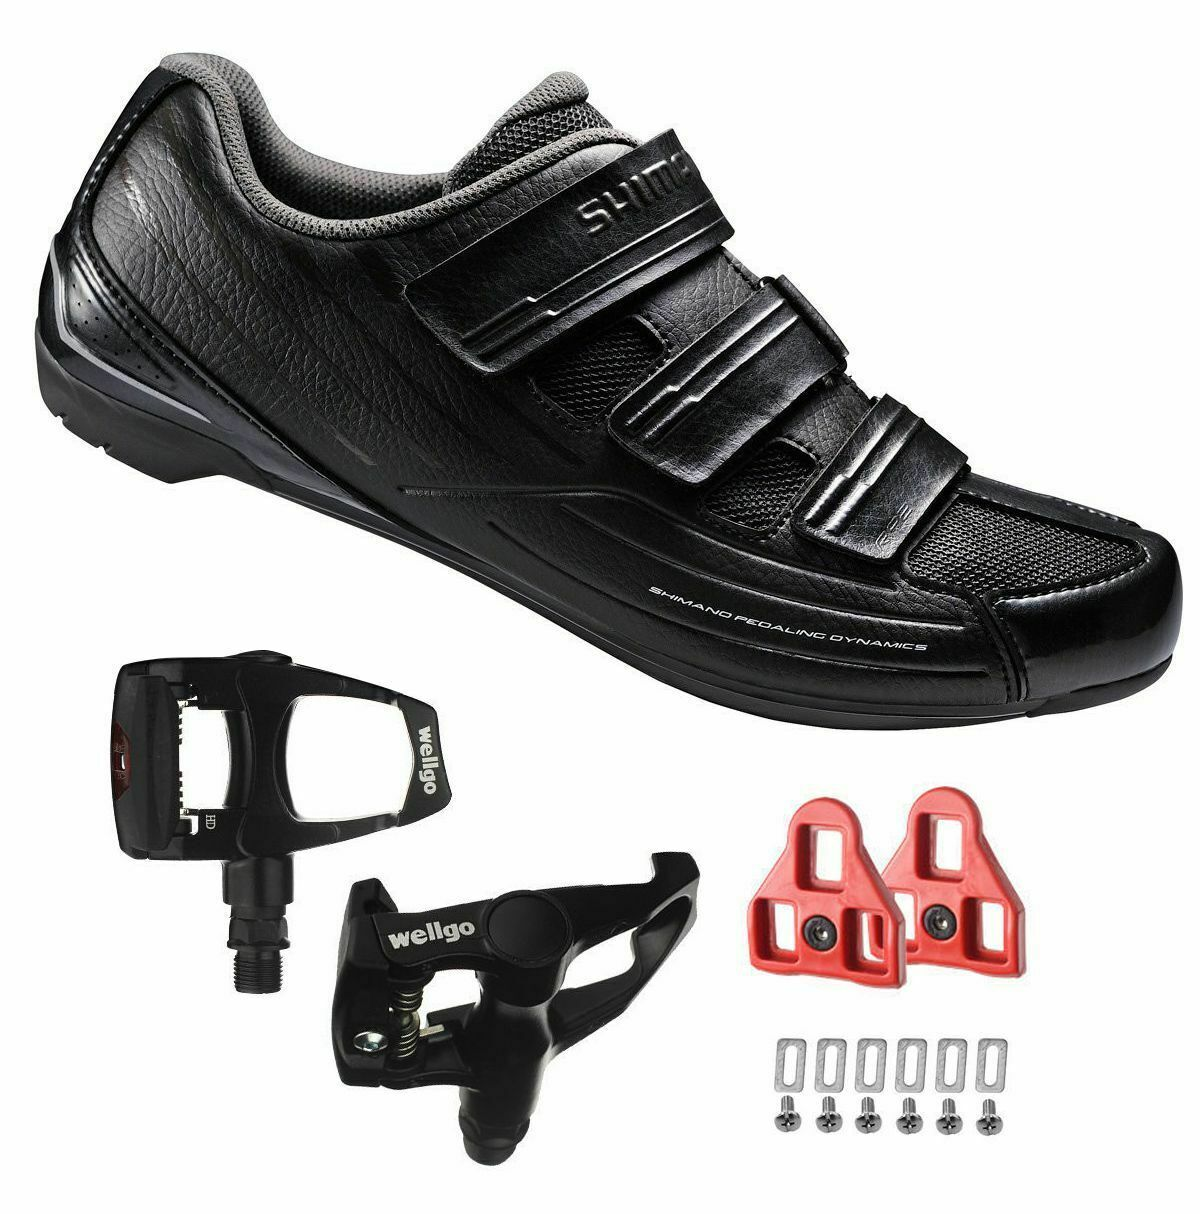 Shimano Sh-rp2 Spd Touring Road Cycling Black Shoes With